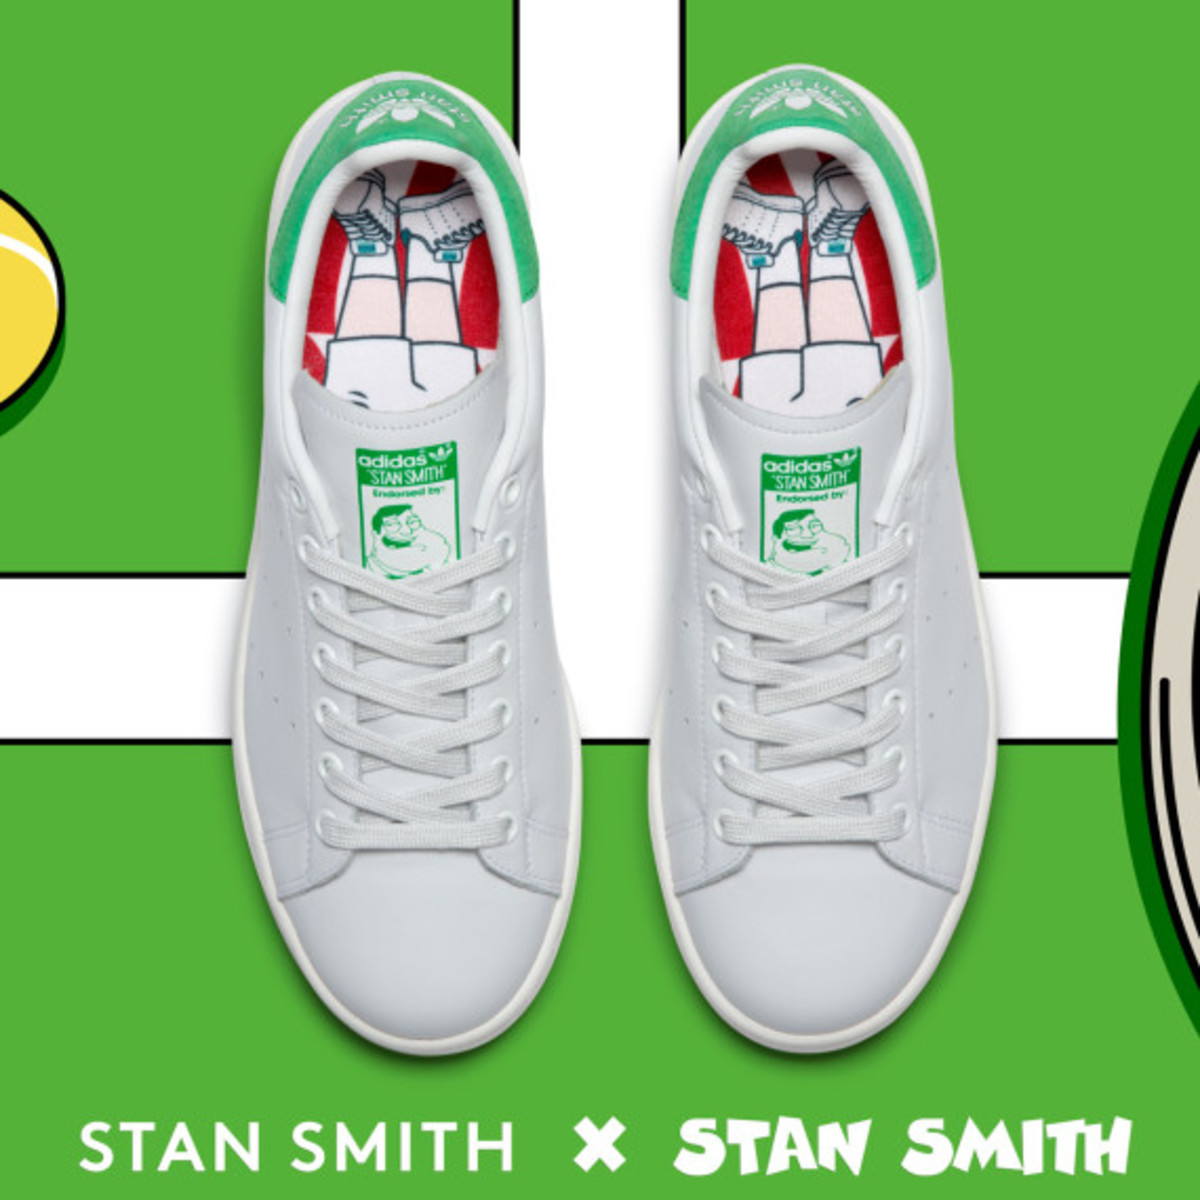 American Dad! collaborates with adidas Originals for Stan Smith x Stan Smith | Another Look - 4